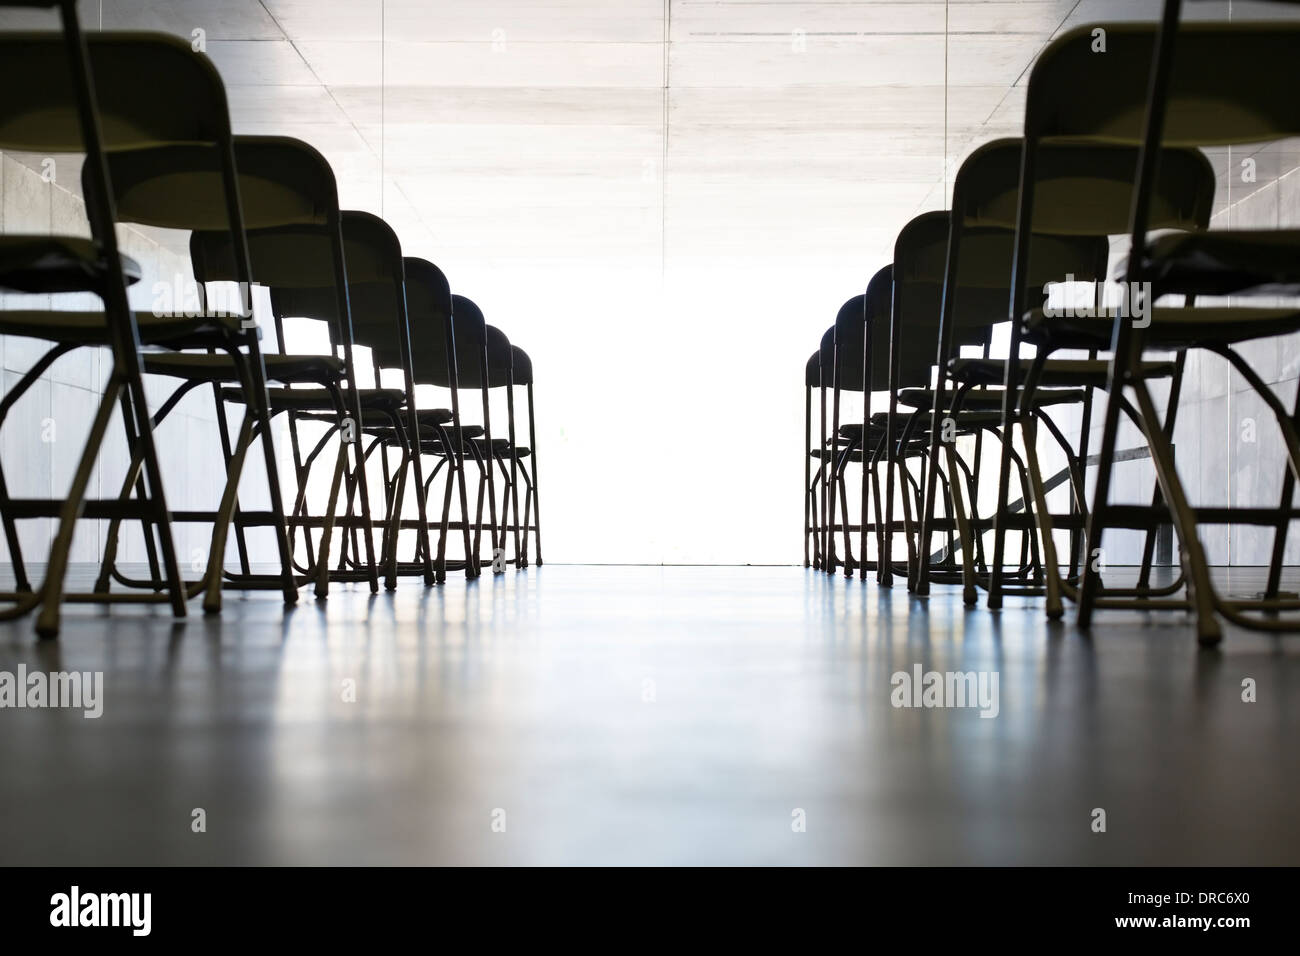 Empty chairs in office - Stock Image